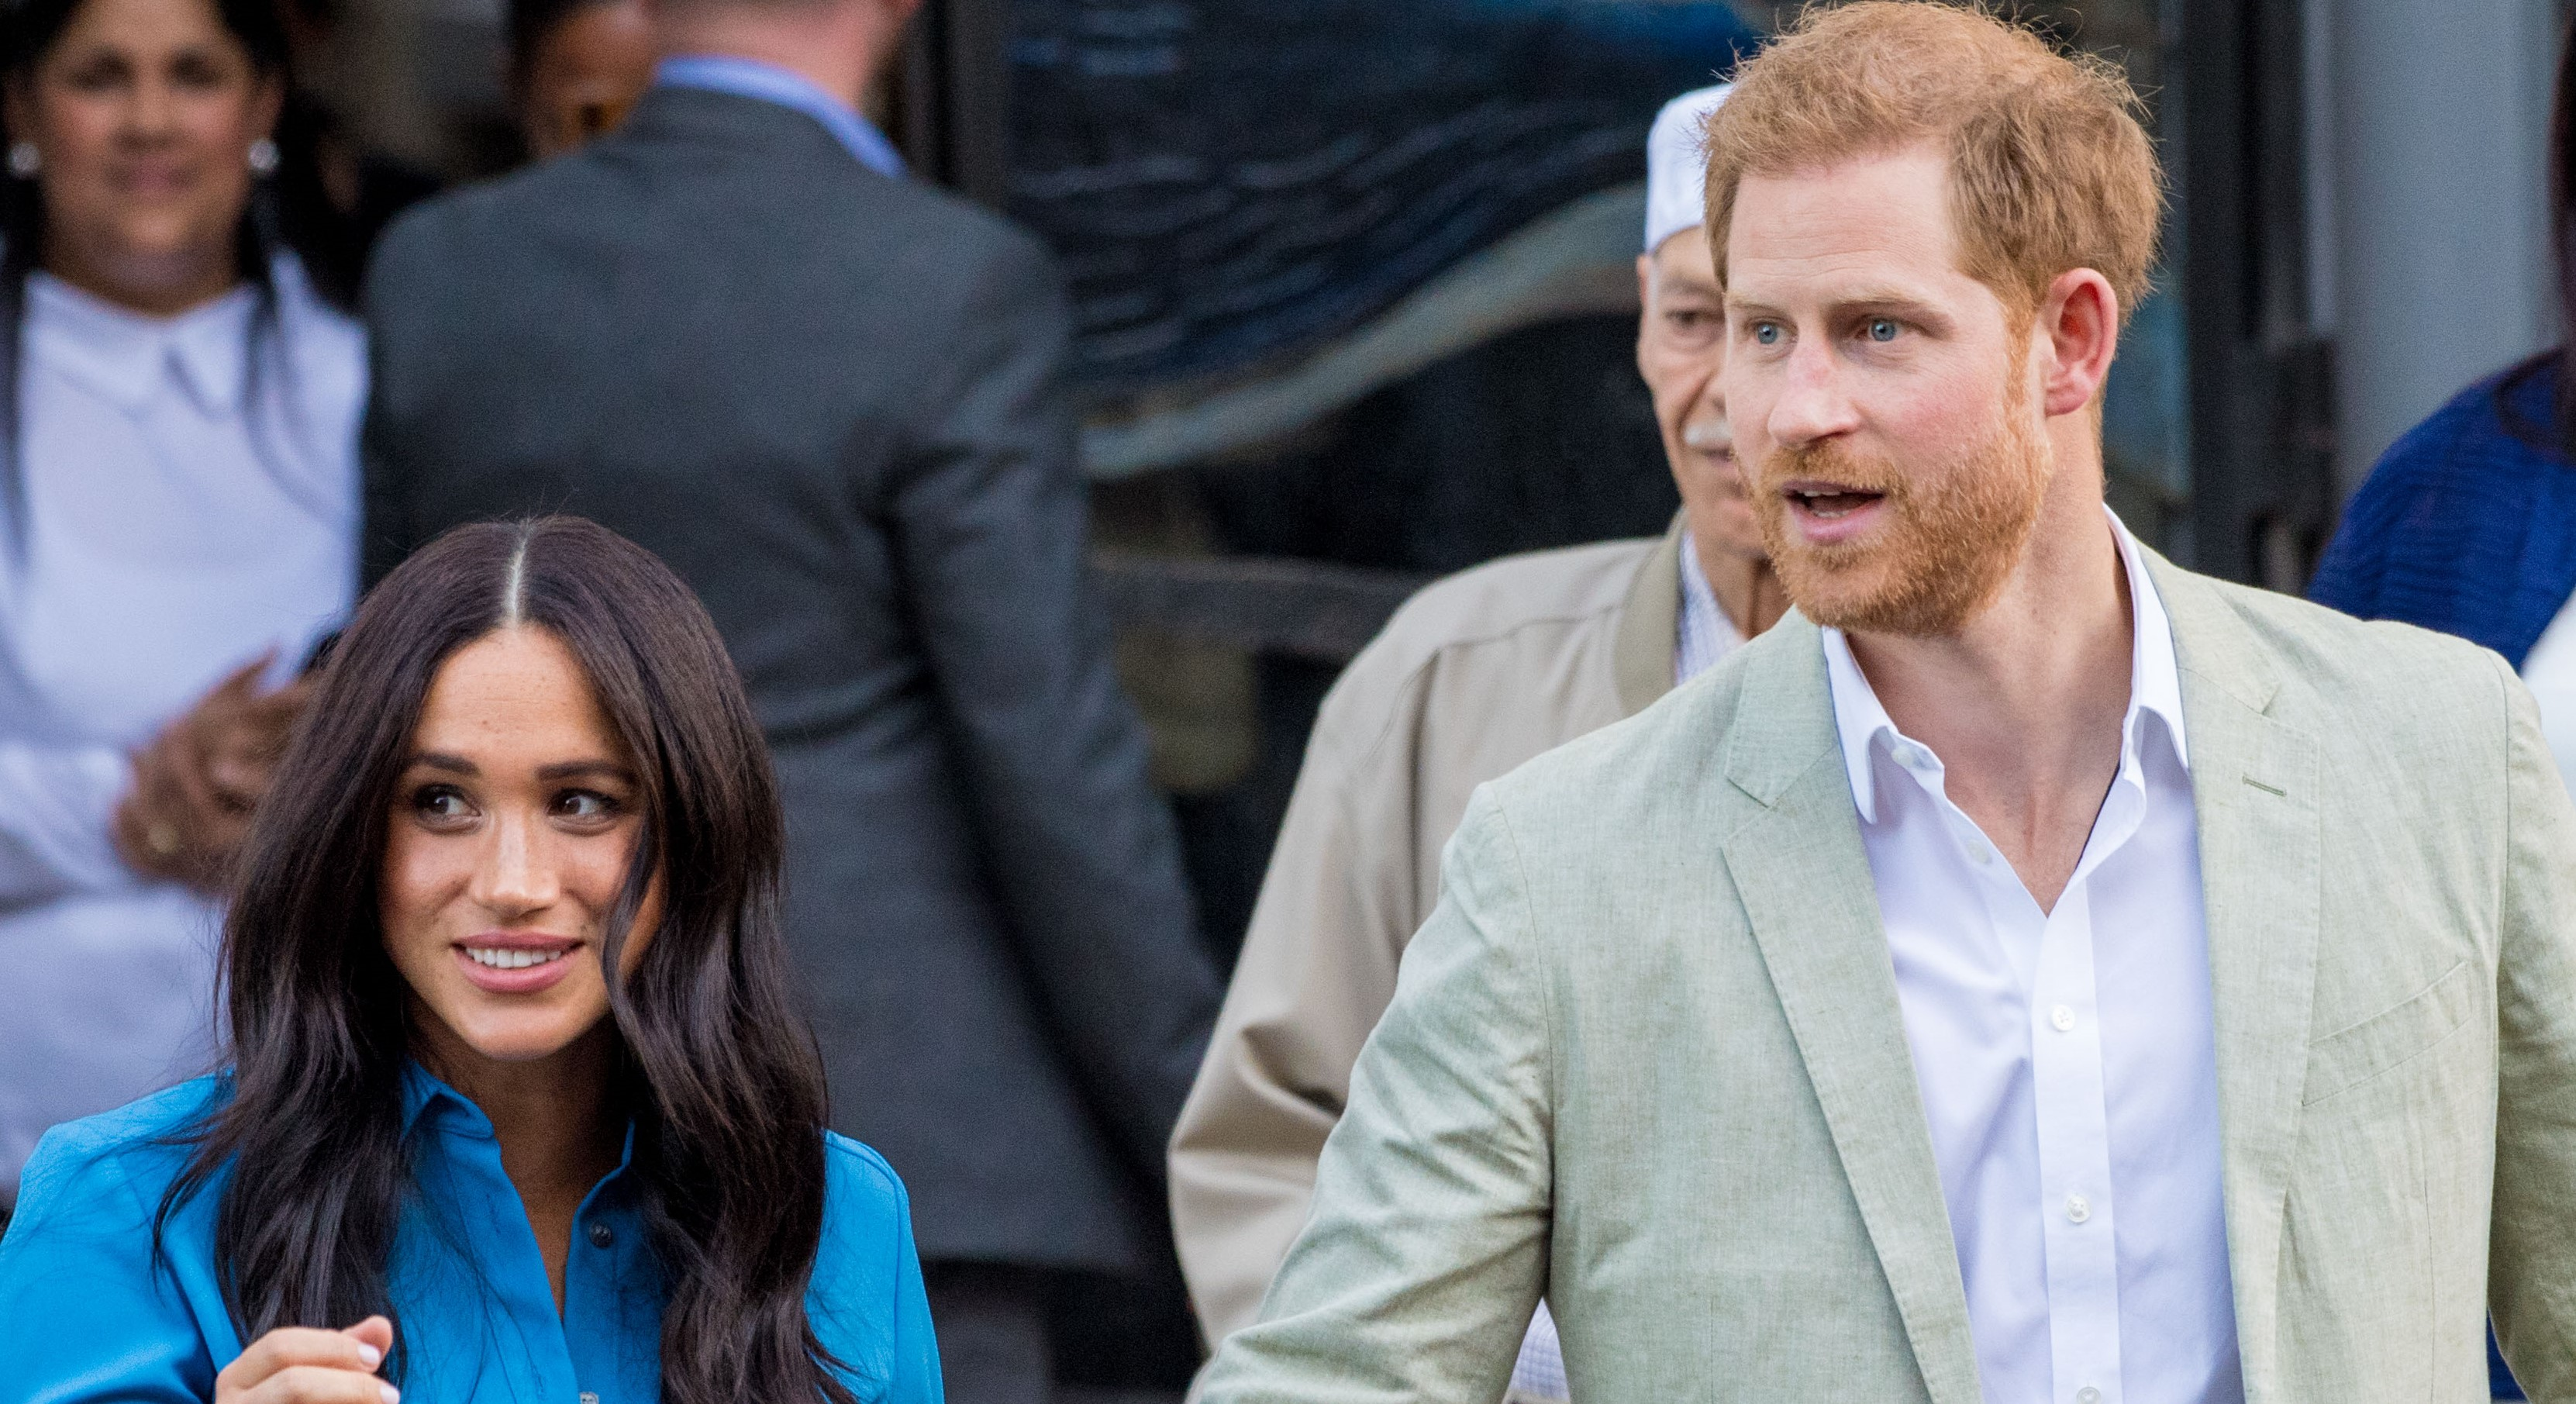 Meghan pays tribute to Harry with son Archie's first royal tour outfit